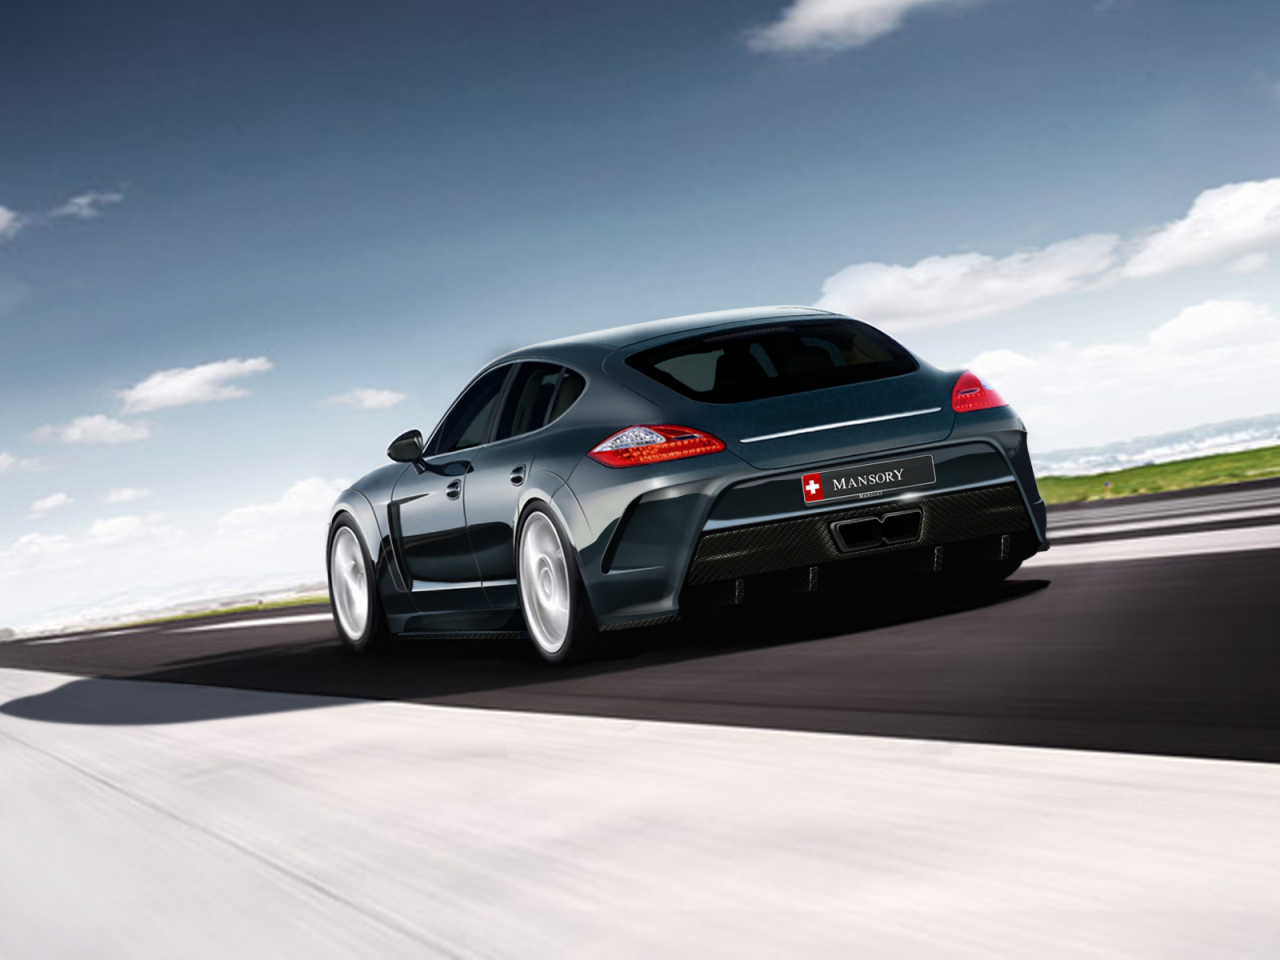 wallpaper 1280x960: Porsche Panamera by Mansory